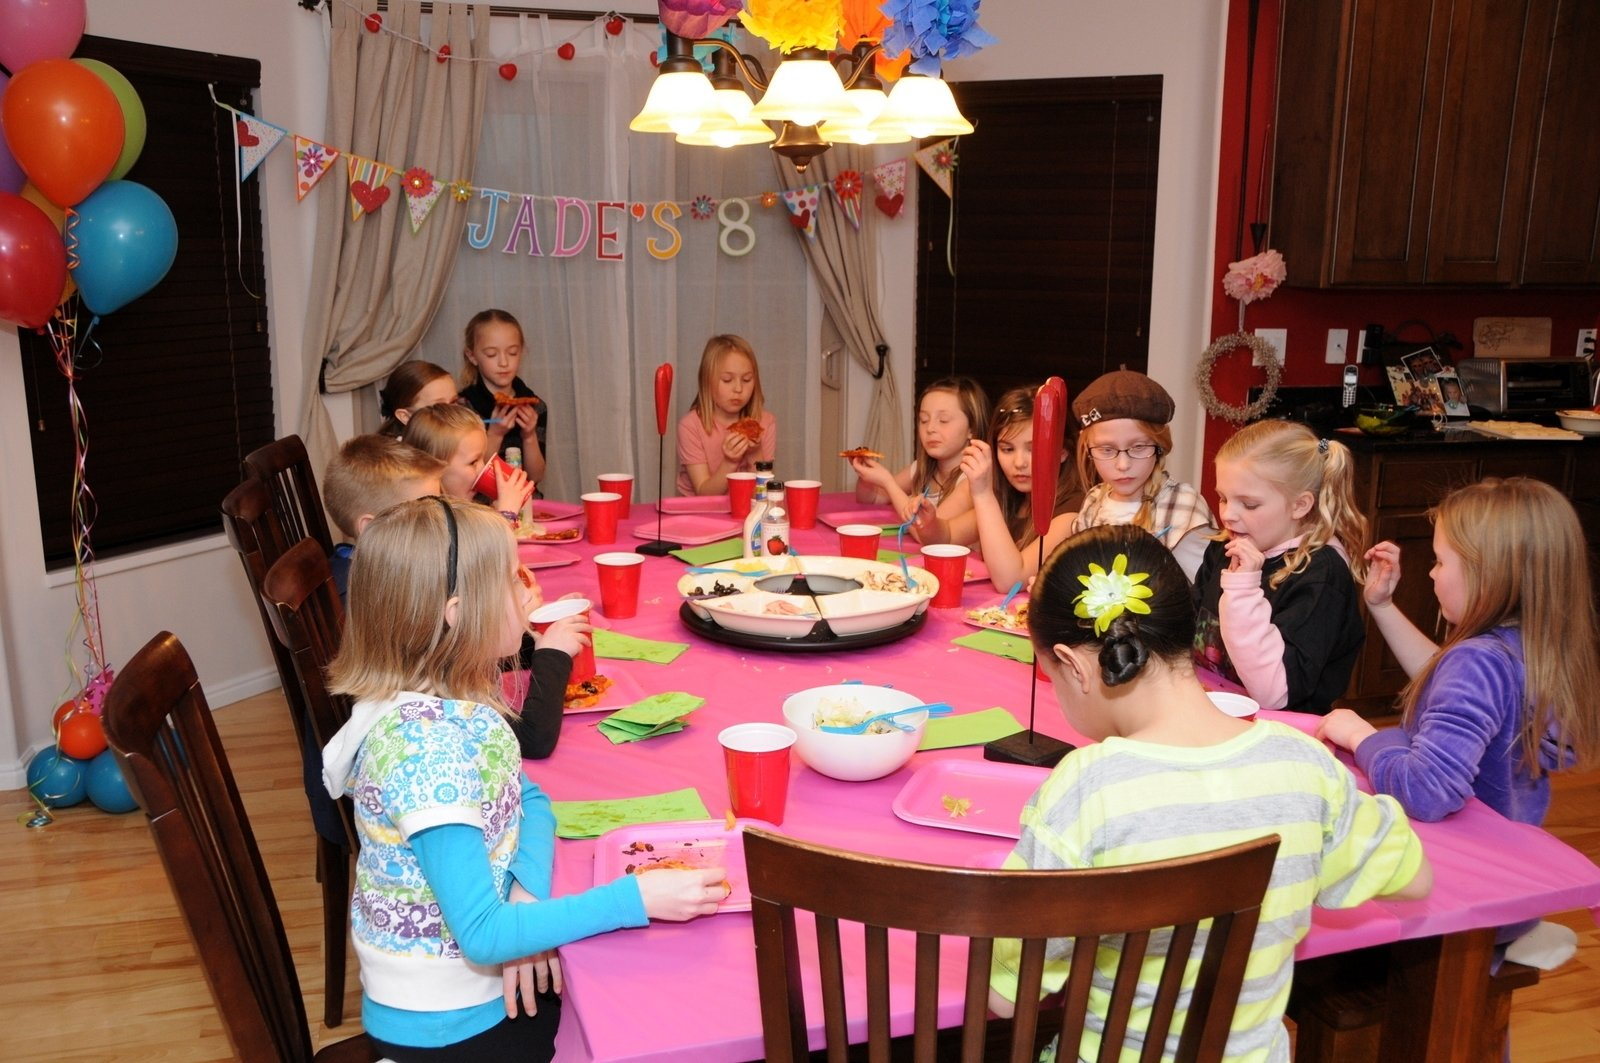 10 Elegant Four Year Old Birthday Party Ideas 8 year old birthday party the family trifecta 5 2020